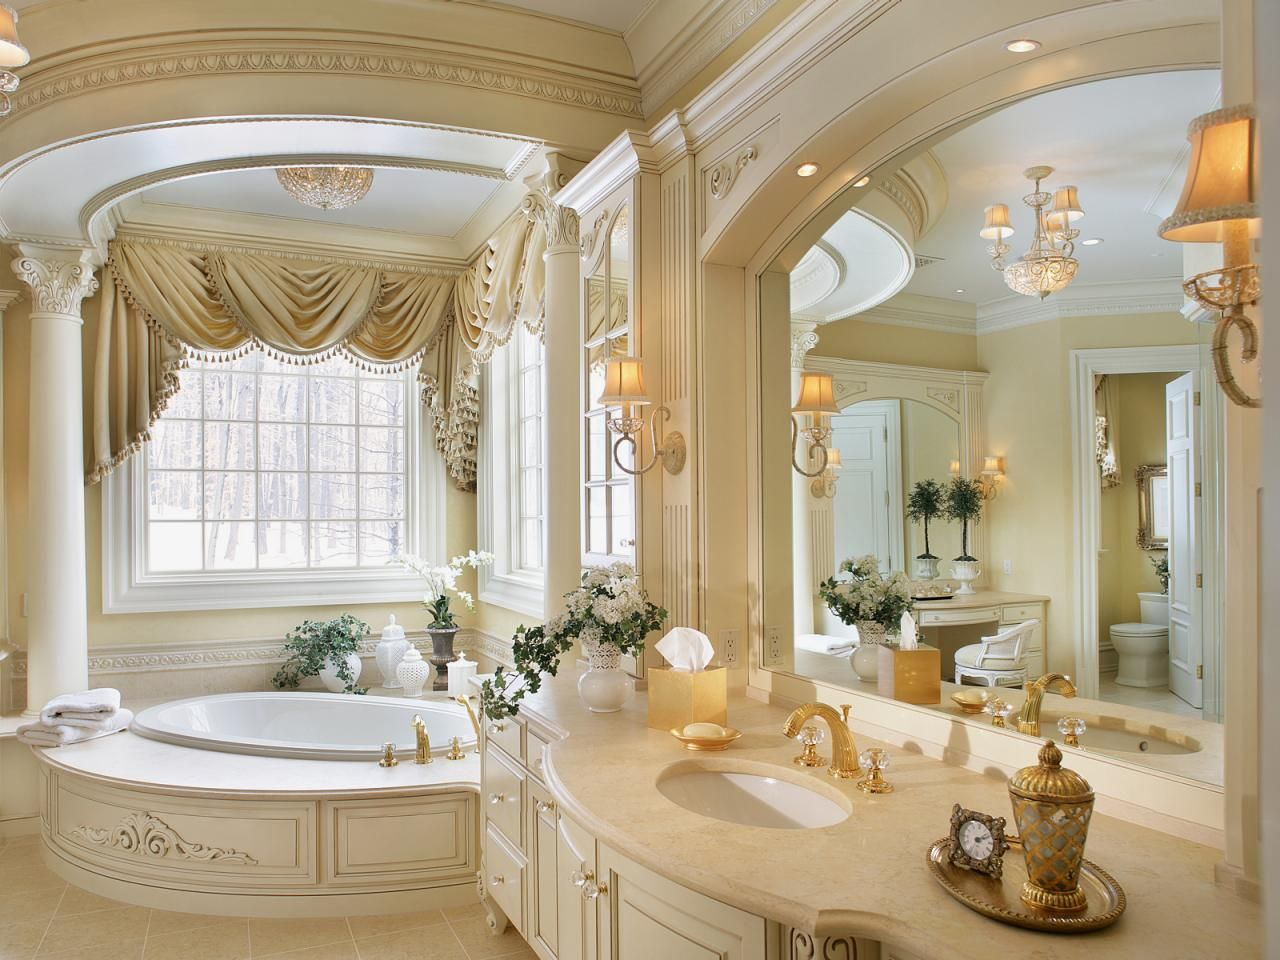 Bathroom Vanity Design Plans Interesting Bathrooms With Luxury Features  Master Bathrooms Makeup Vanities 2018